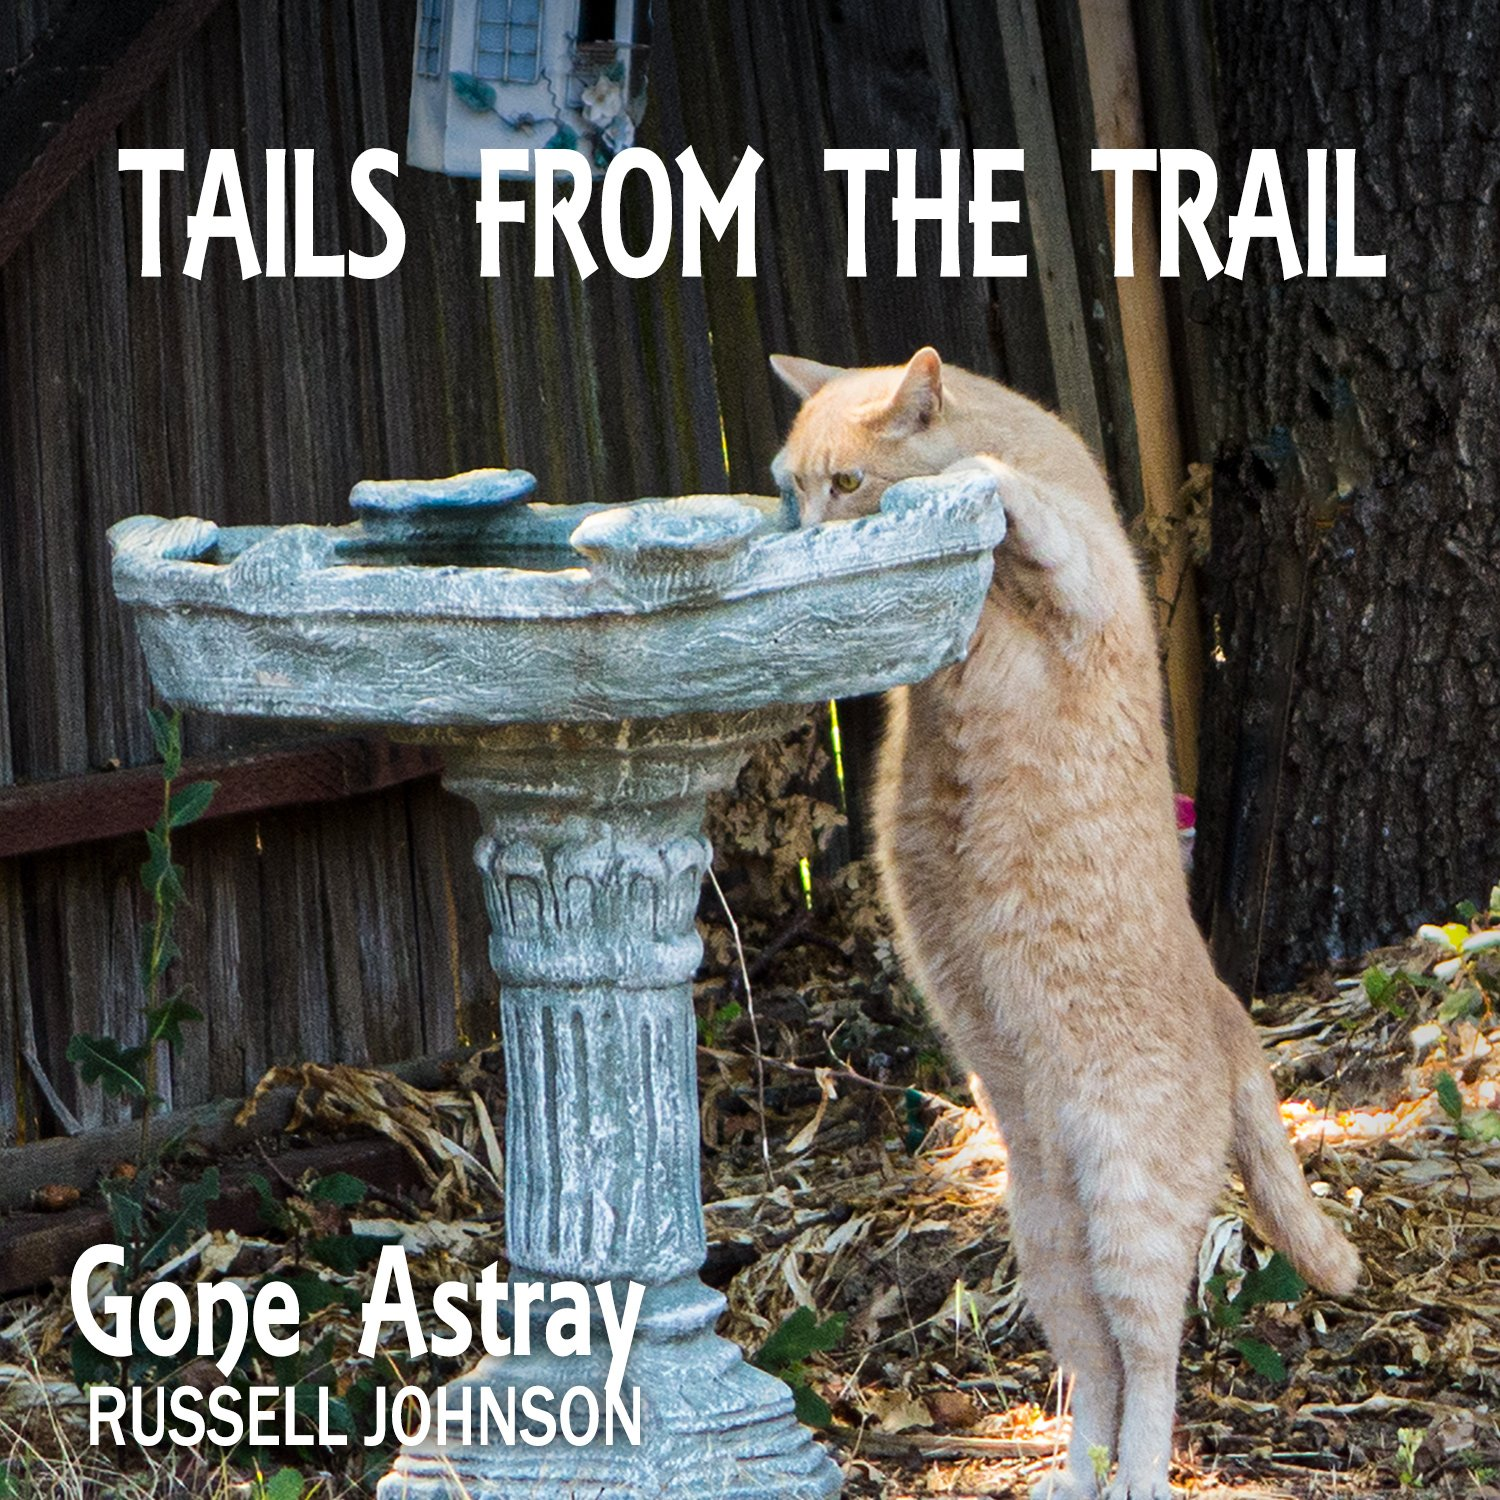 Tails From The Trail - Gone Astray Podcast